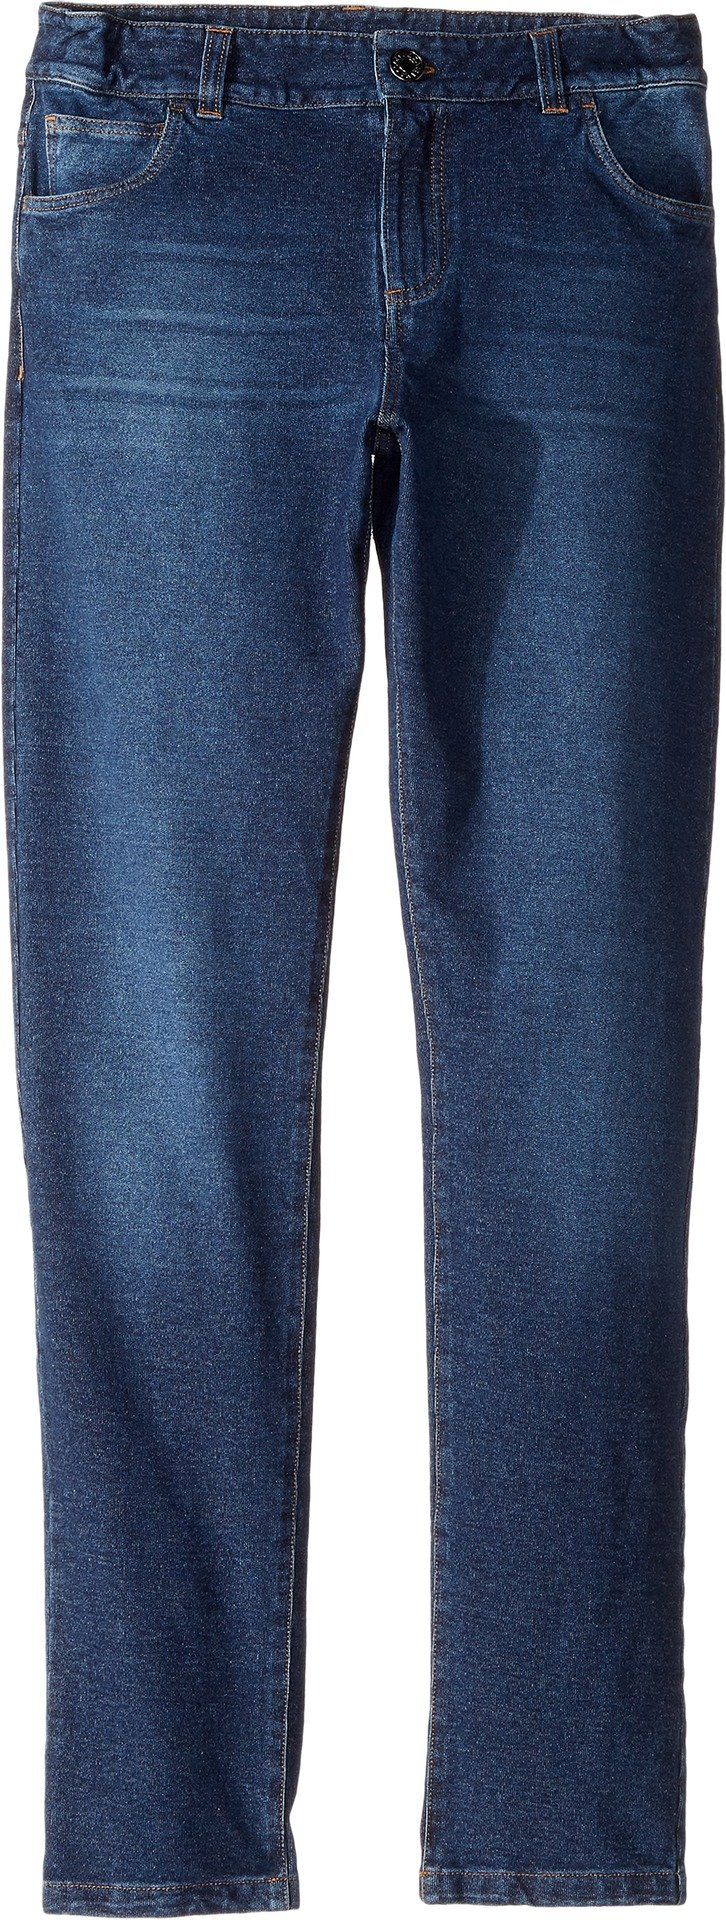 Dolce & Gabbana Kids Boy's Washed Denim (Big Kids) Blue 10 Big Kids by Dolce & Gabbana